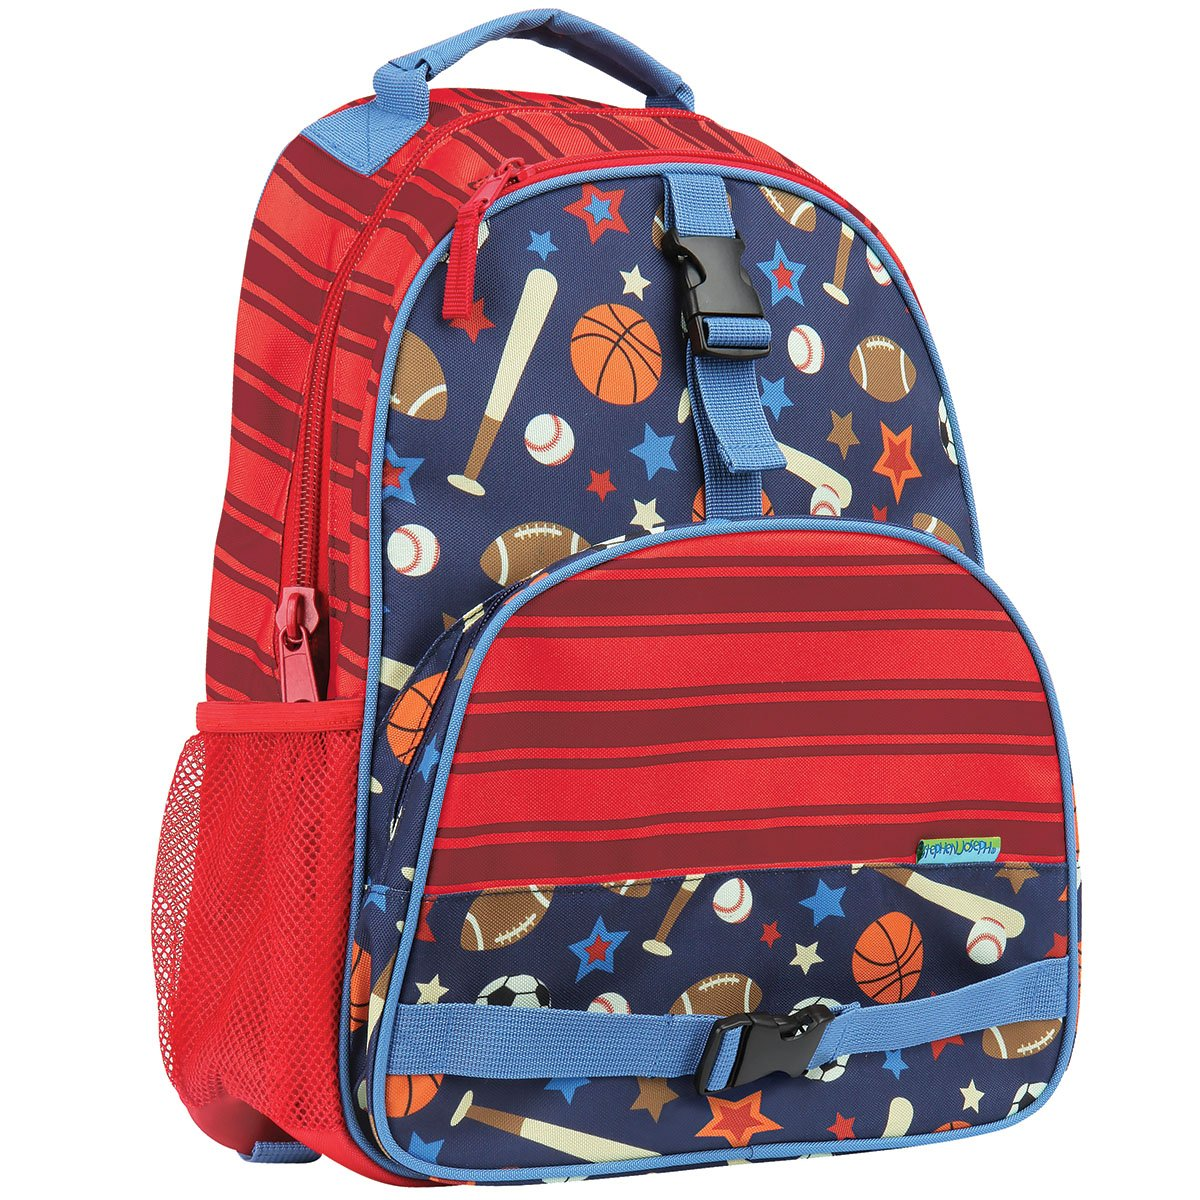 Stephen Joseph Big Boy's All Over Print Backpack, Accessory, Dino, No Size SJ112059